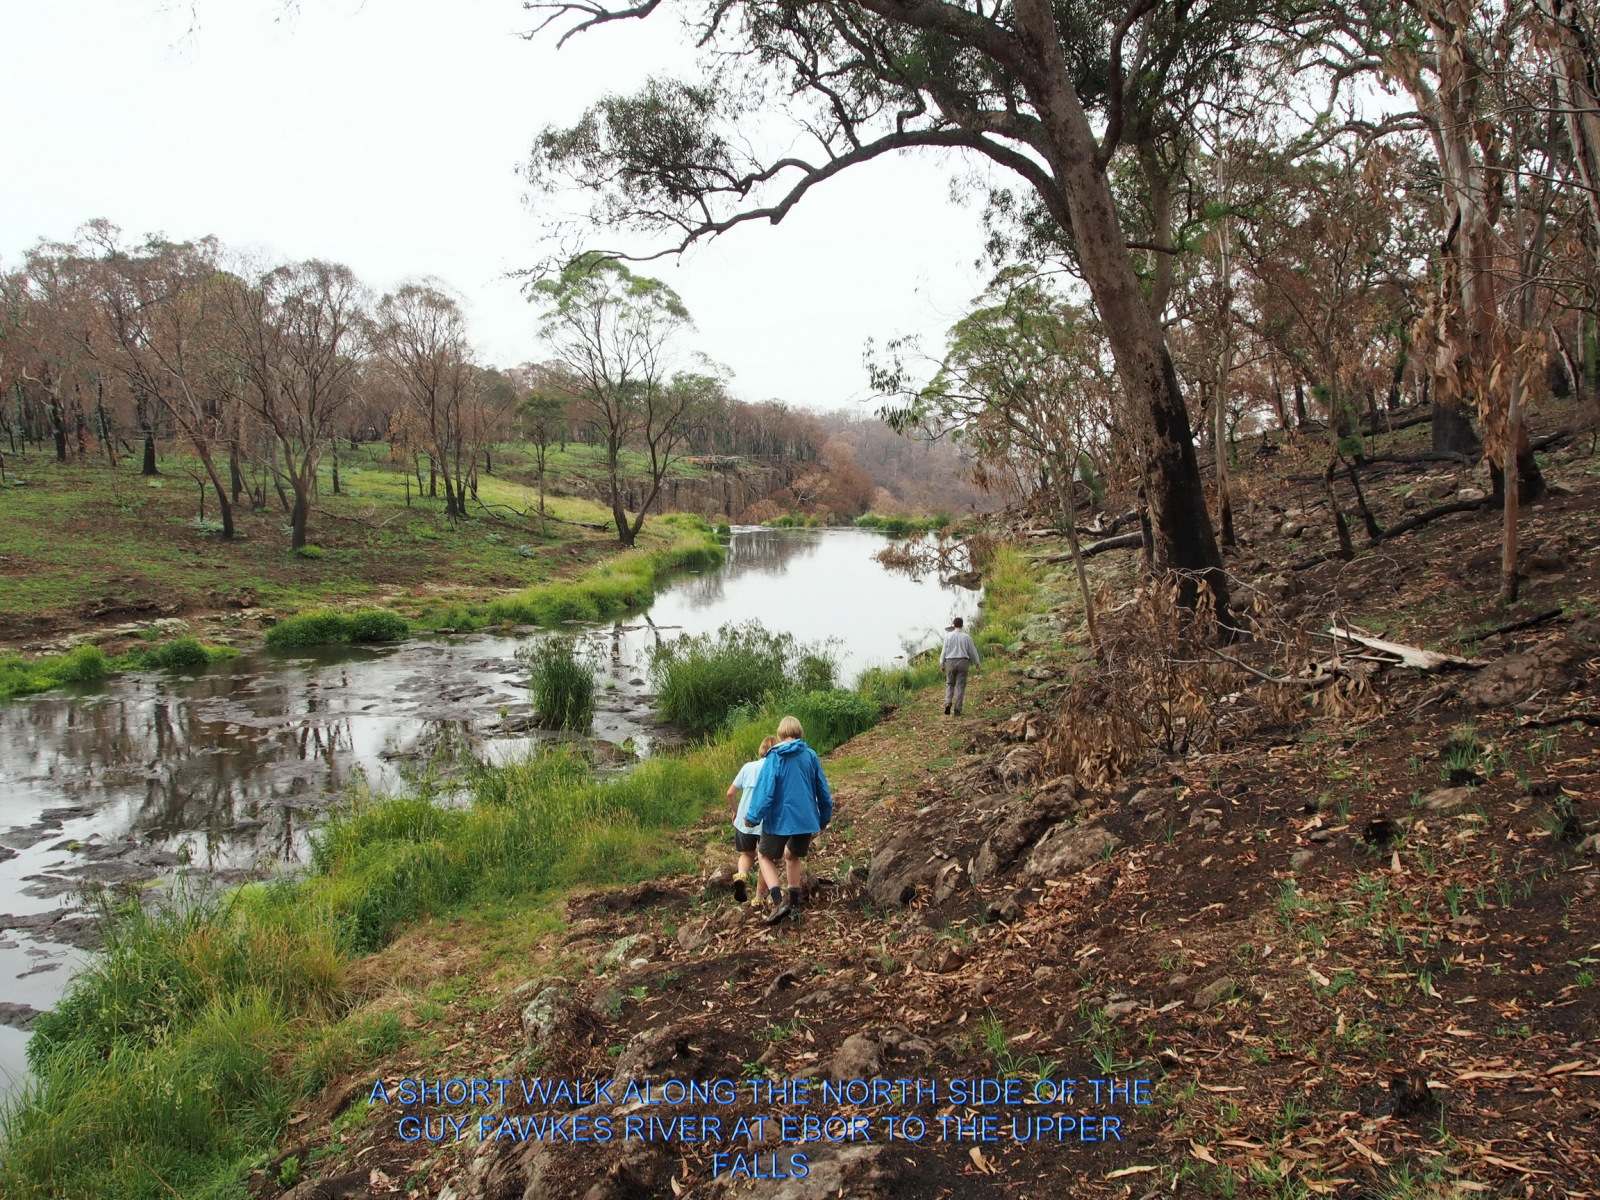 A SHORT WALK ALONG THE NORTH SIDE OF THE GUY FAWKES RIVER AT EBOR TO THE UPPER FALLS